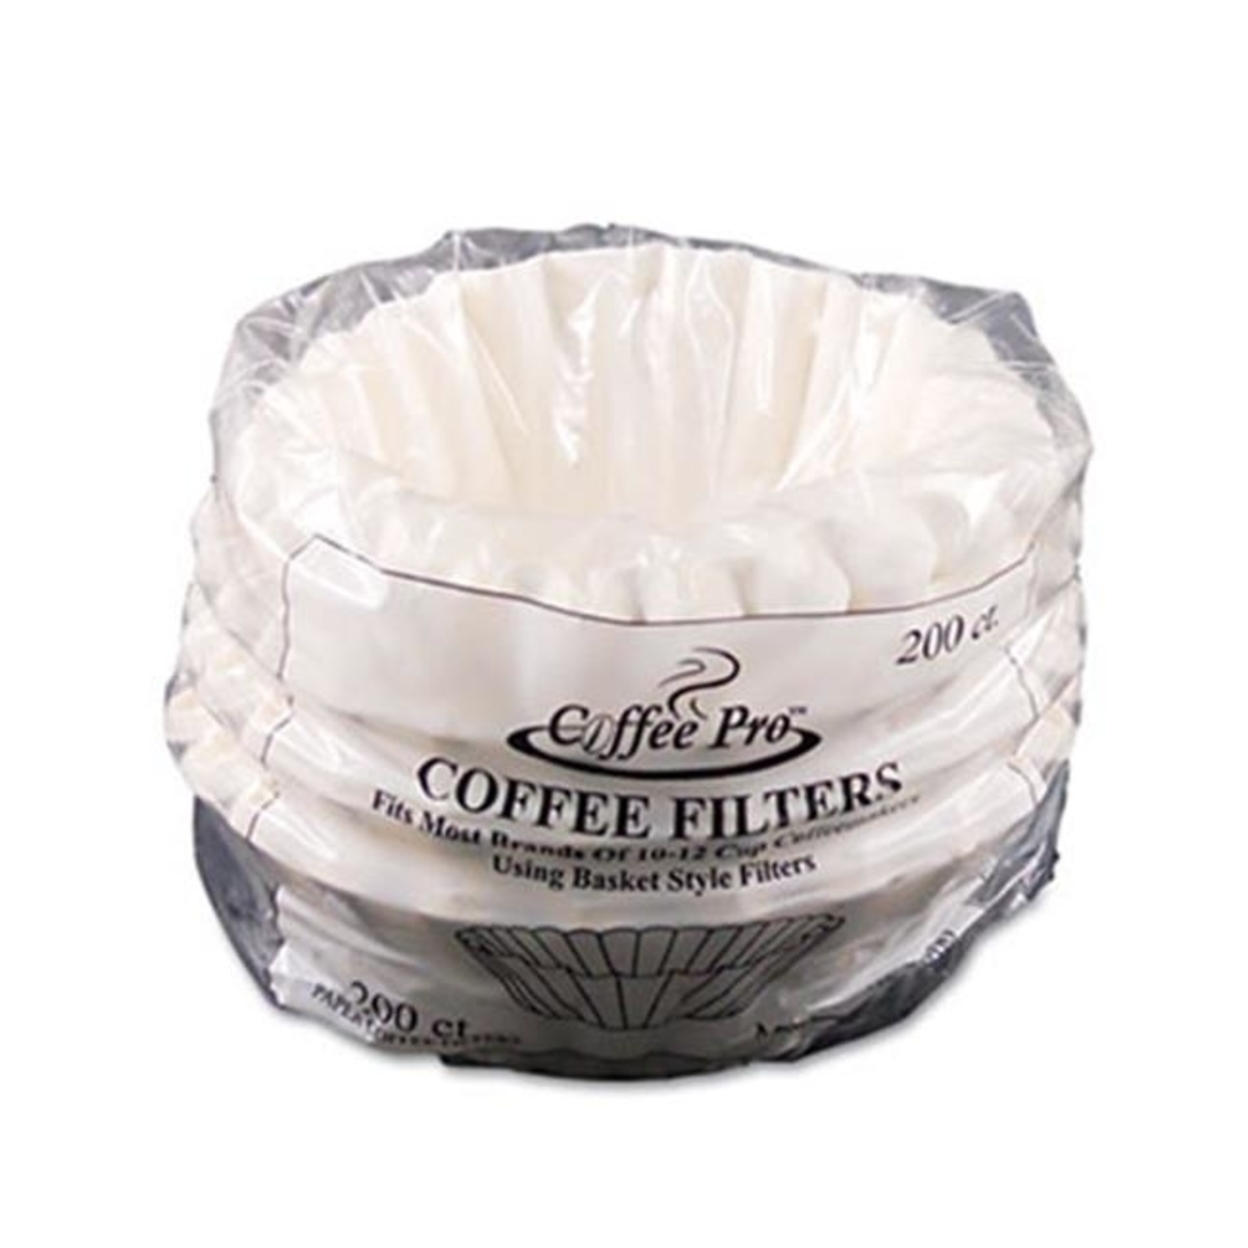 Coffee Pro Cpf200 Basket Filters for Drip Coffeemakers 10 to 12 Cups White 200 Filters-Pack 596d026a2a00e47c775d4cf9